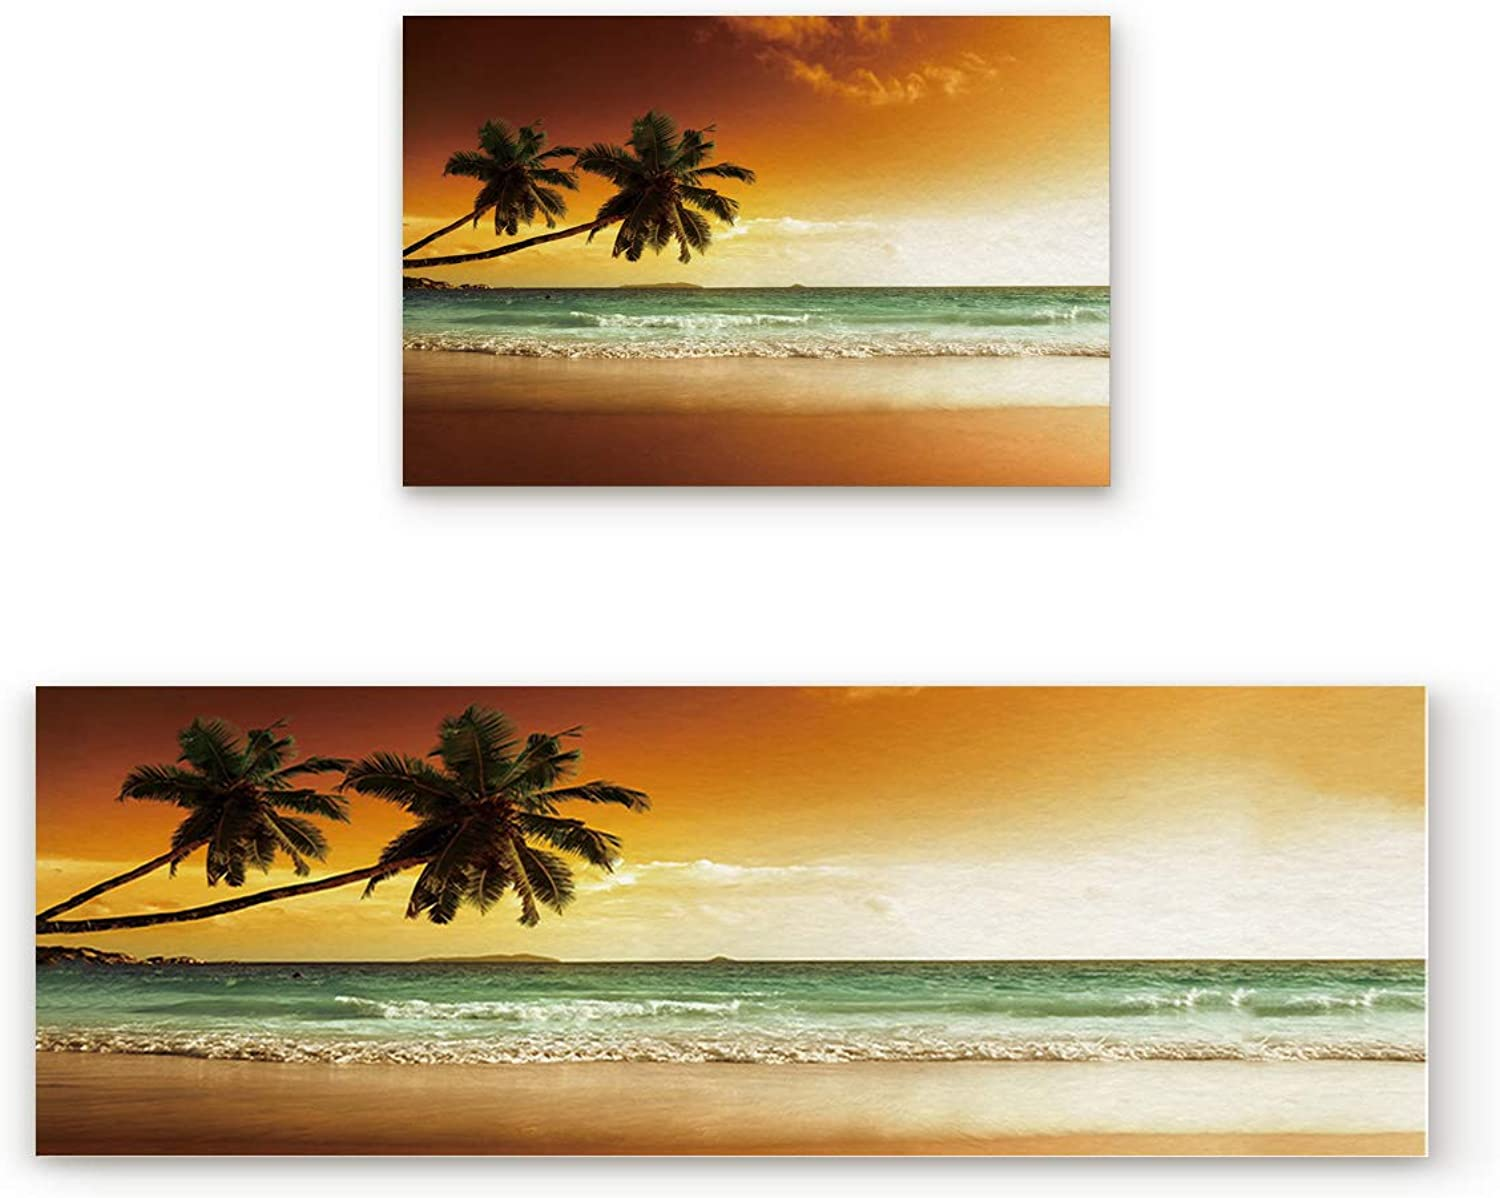 2 Piece Non-Slip Kitchen Mat Doormat Runner Rug Set Thin Low Pile Indoor Area Rugs Ocean Theme Fairy Sunset Over The Sea with The Palms on The Beach at Island in Horizon 19.7 x31.5 +19.7 x47.2